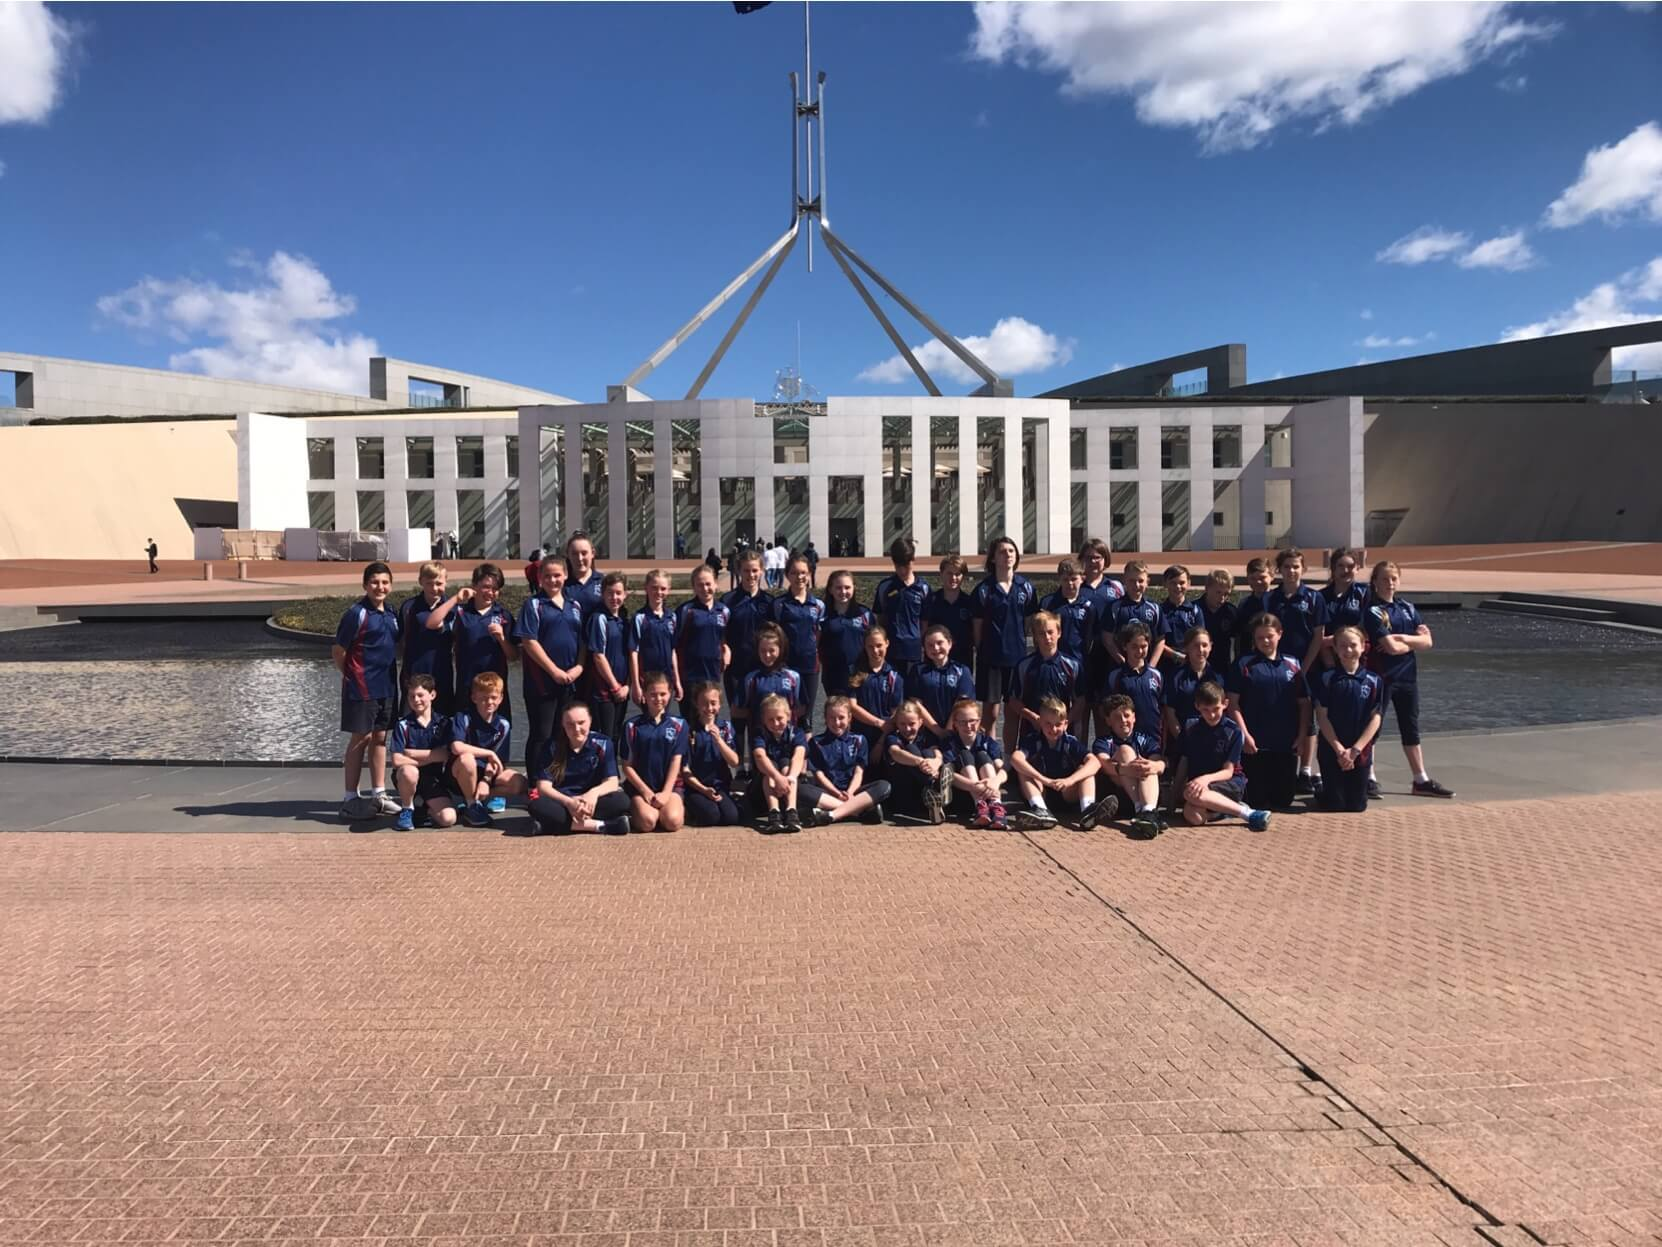 Parliament House 2019